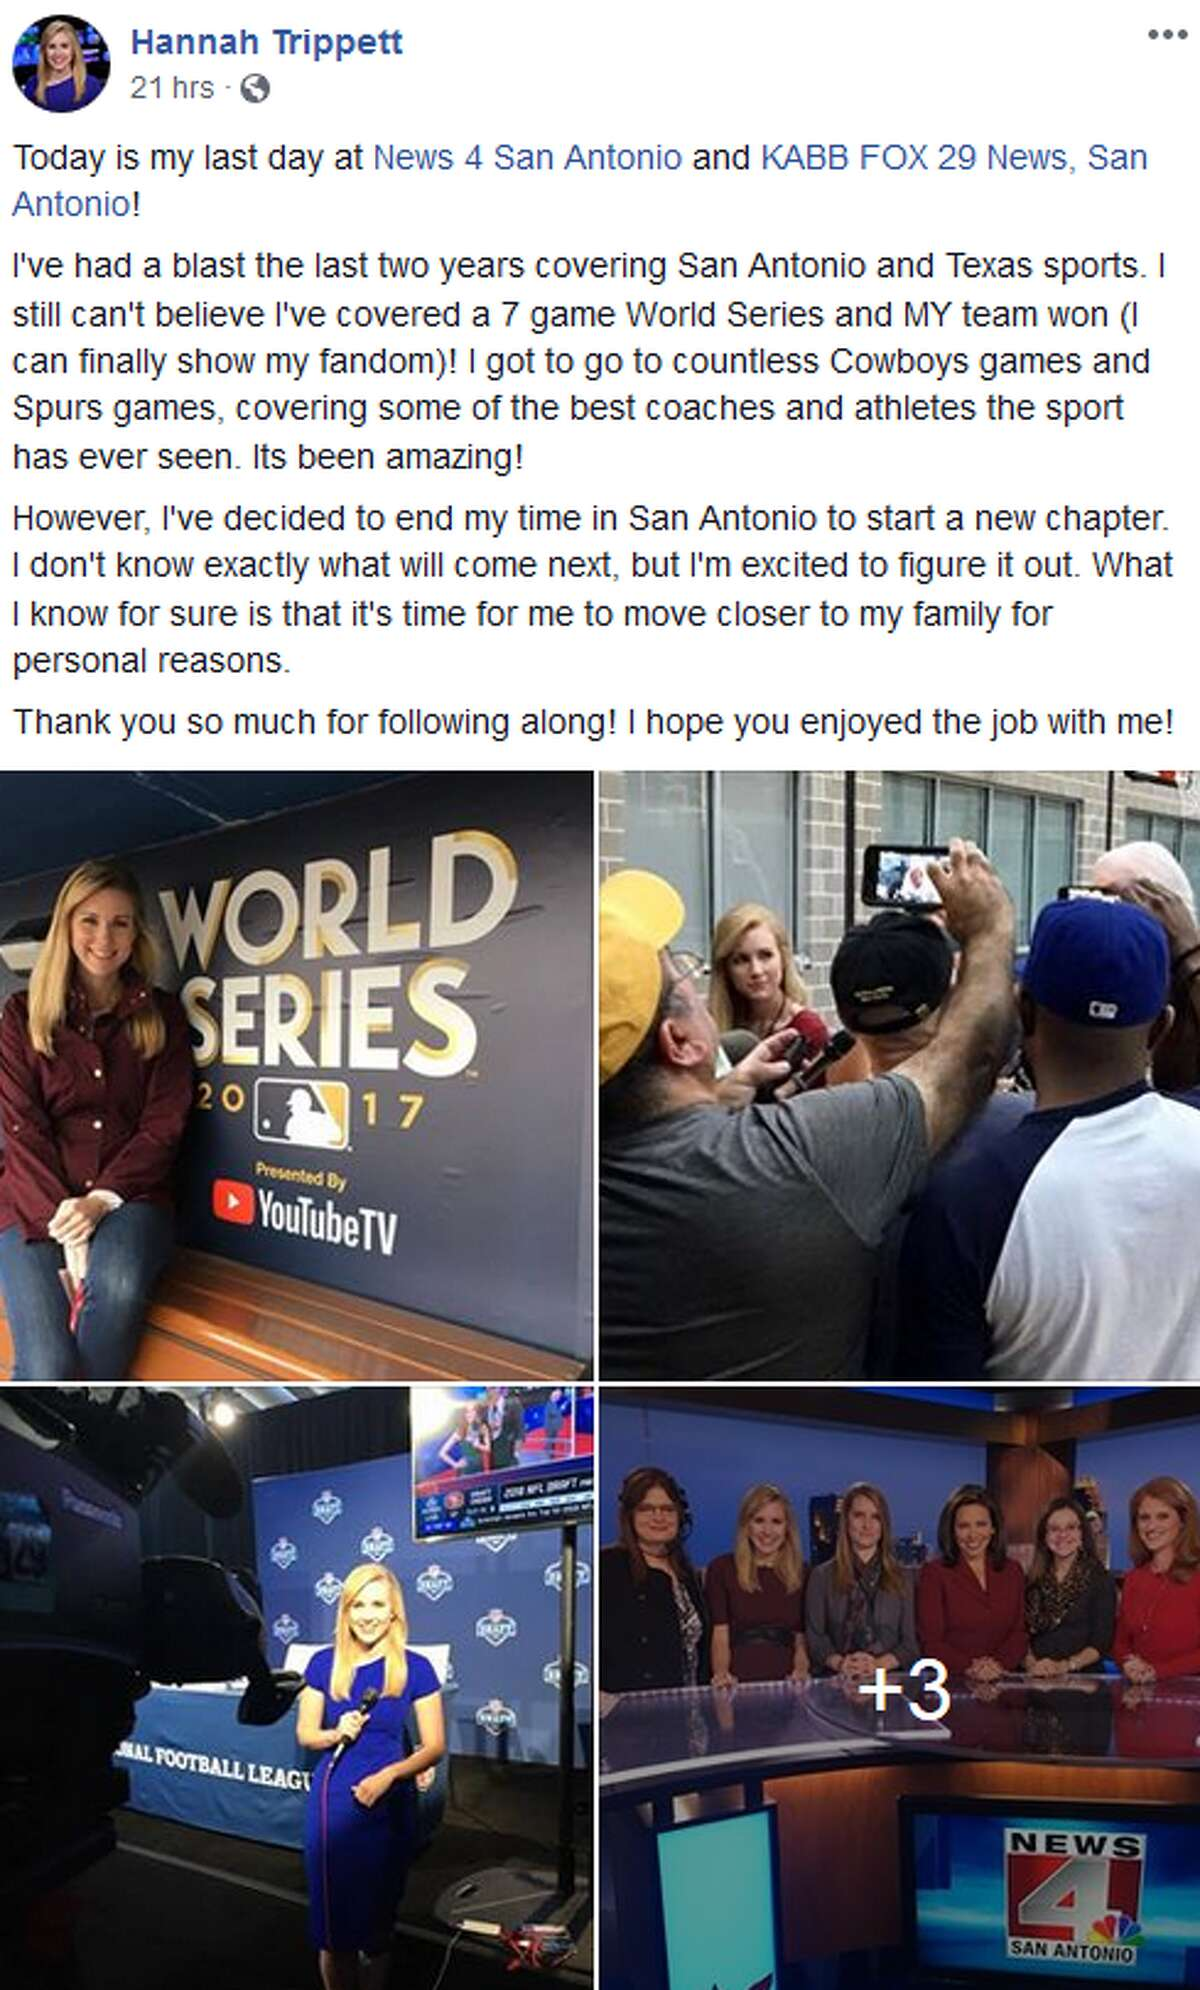 """""""I've had a blast the last two years covering San Antonio and Texas sports. I still can't believe I've covered a 7 game World Series and MY team won (I can finally show my fandom)! I got to go to countless Cowboys games and Spurs games, covering some of the best coaches and athletes the sport has ever seen. Its been amazing,"""" Hannah Trippett said on Facebook."""